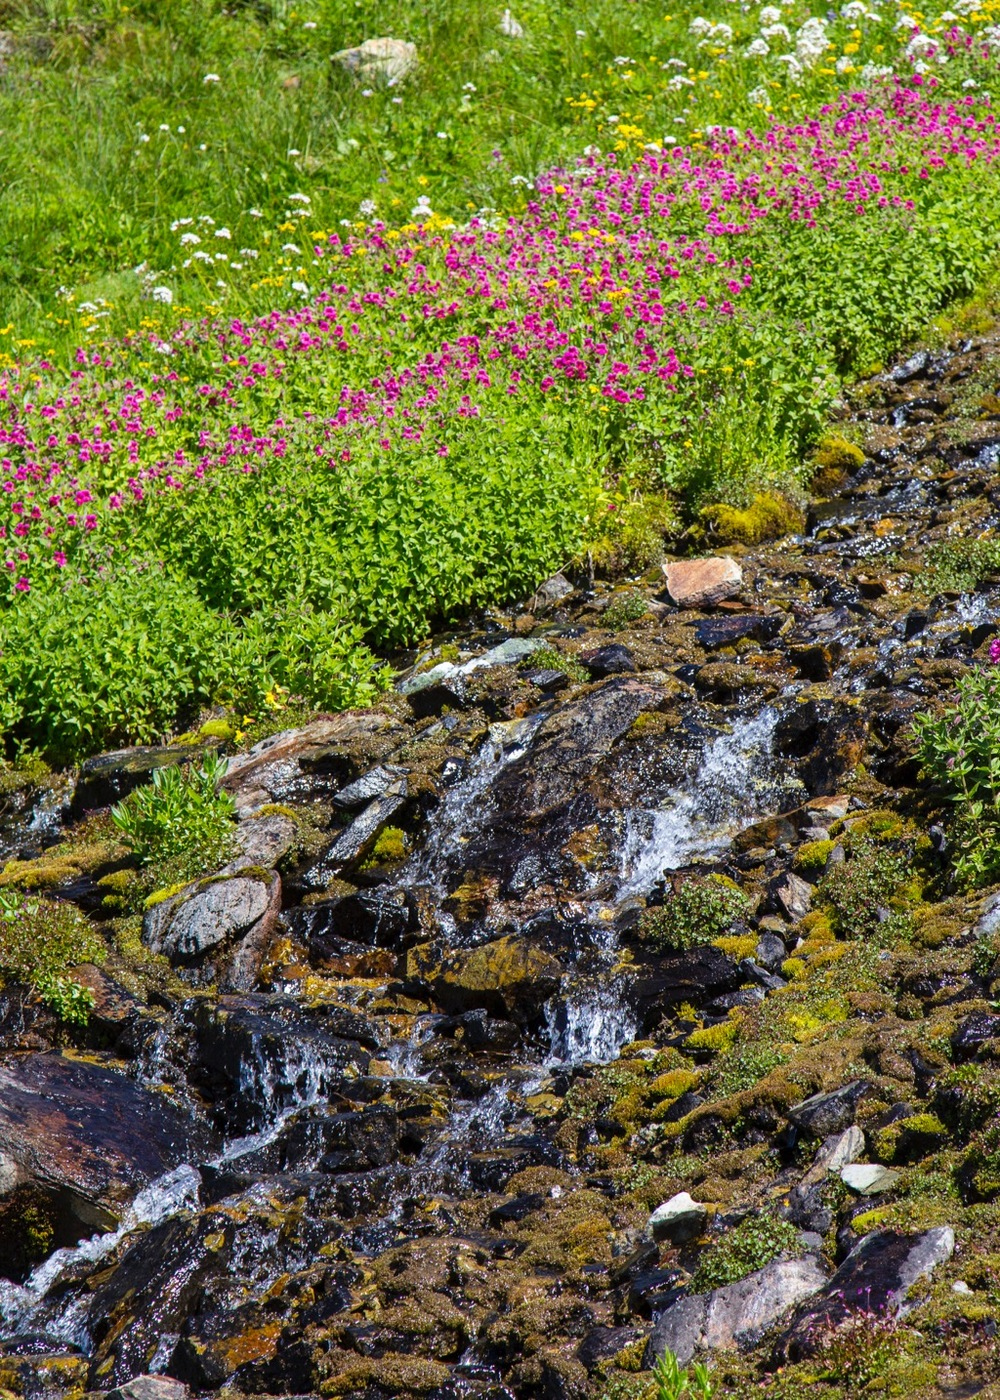 The flowers line the whole stream with a riot of colour.